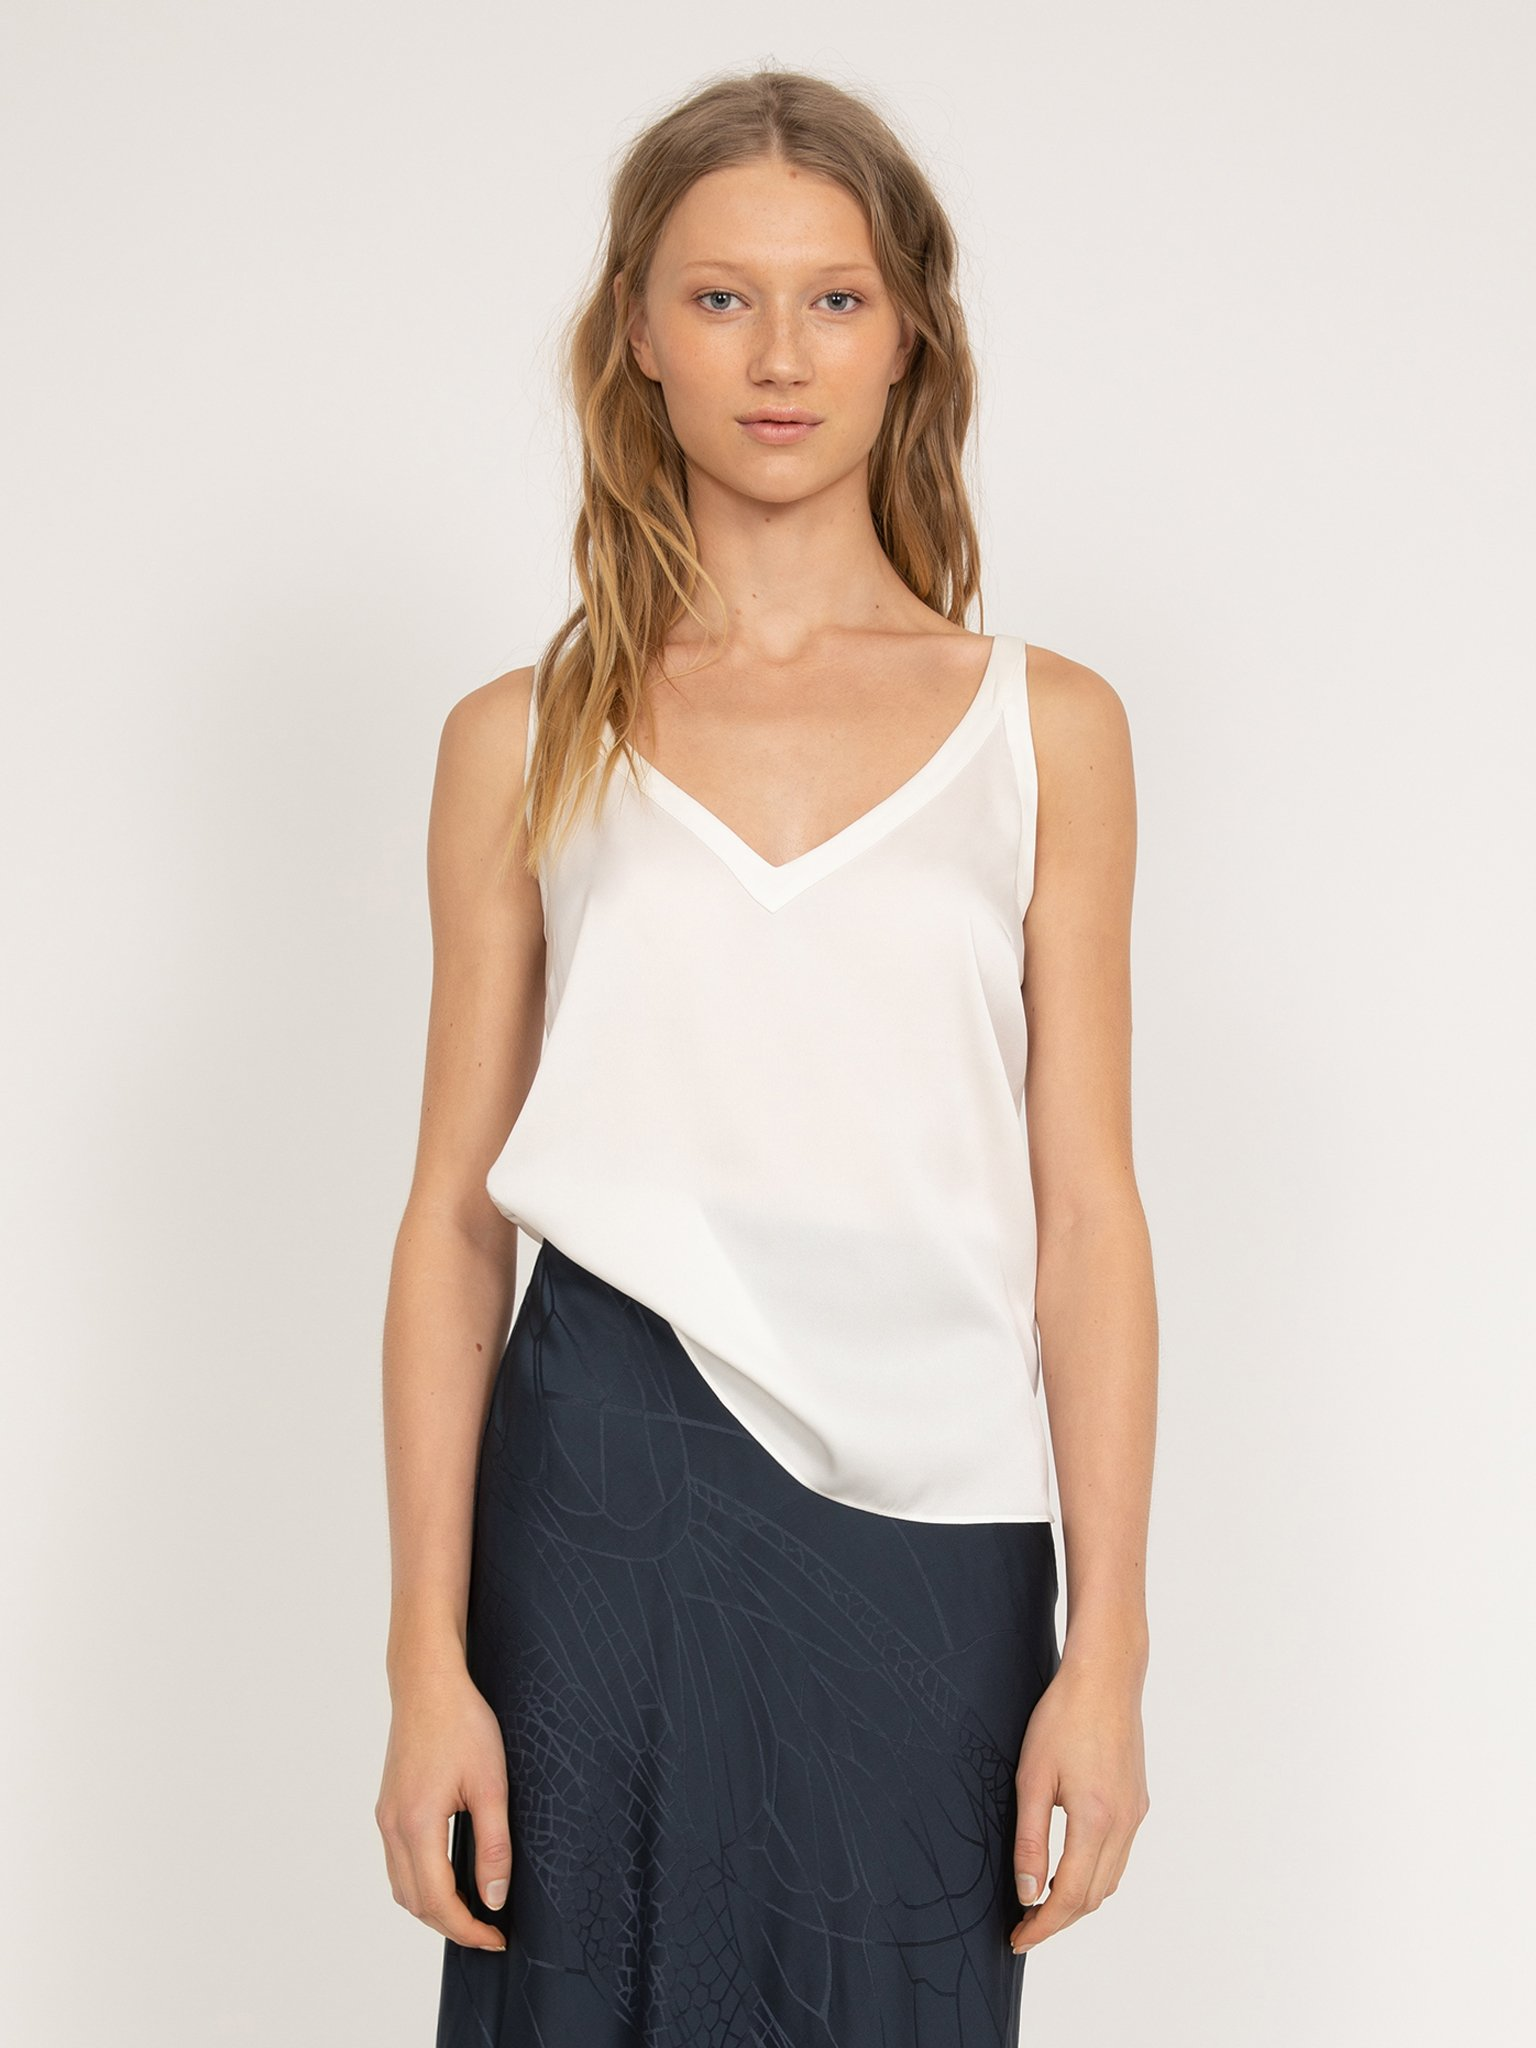 Linne, Ahlvar Gallery, Shin Tank Top, Off-White